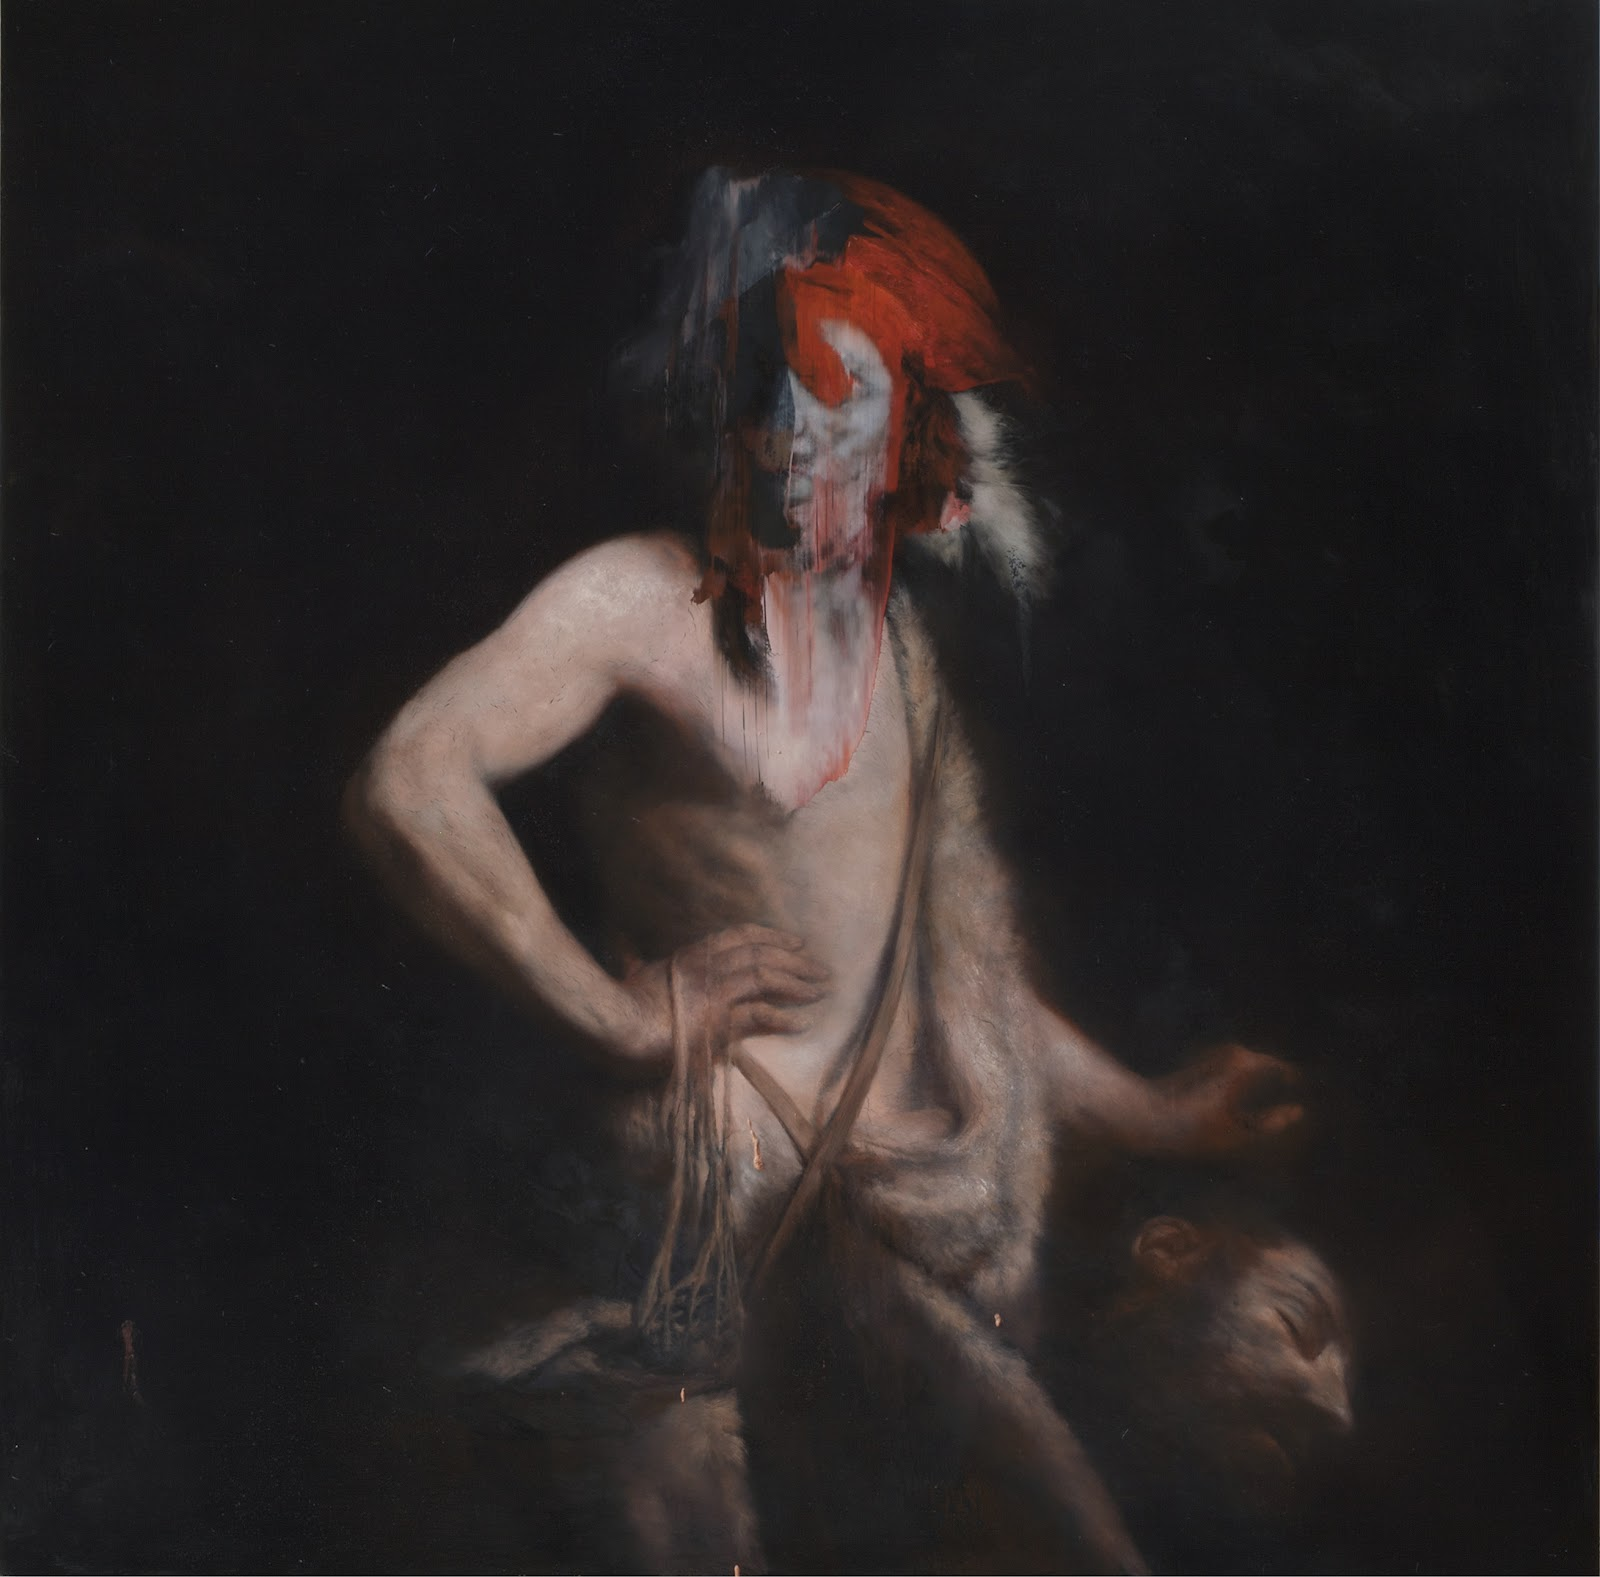 The Works of Nicola Samori: ns_4_20120930_1585861552.jpg